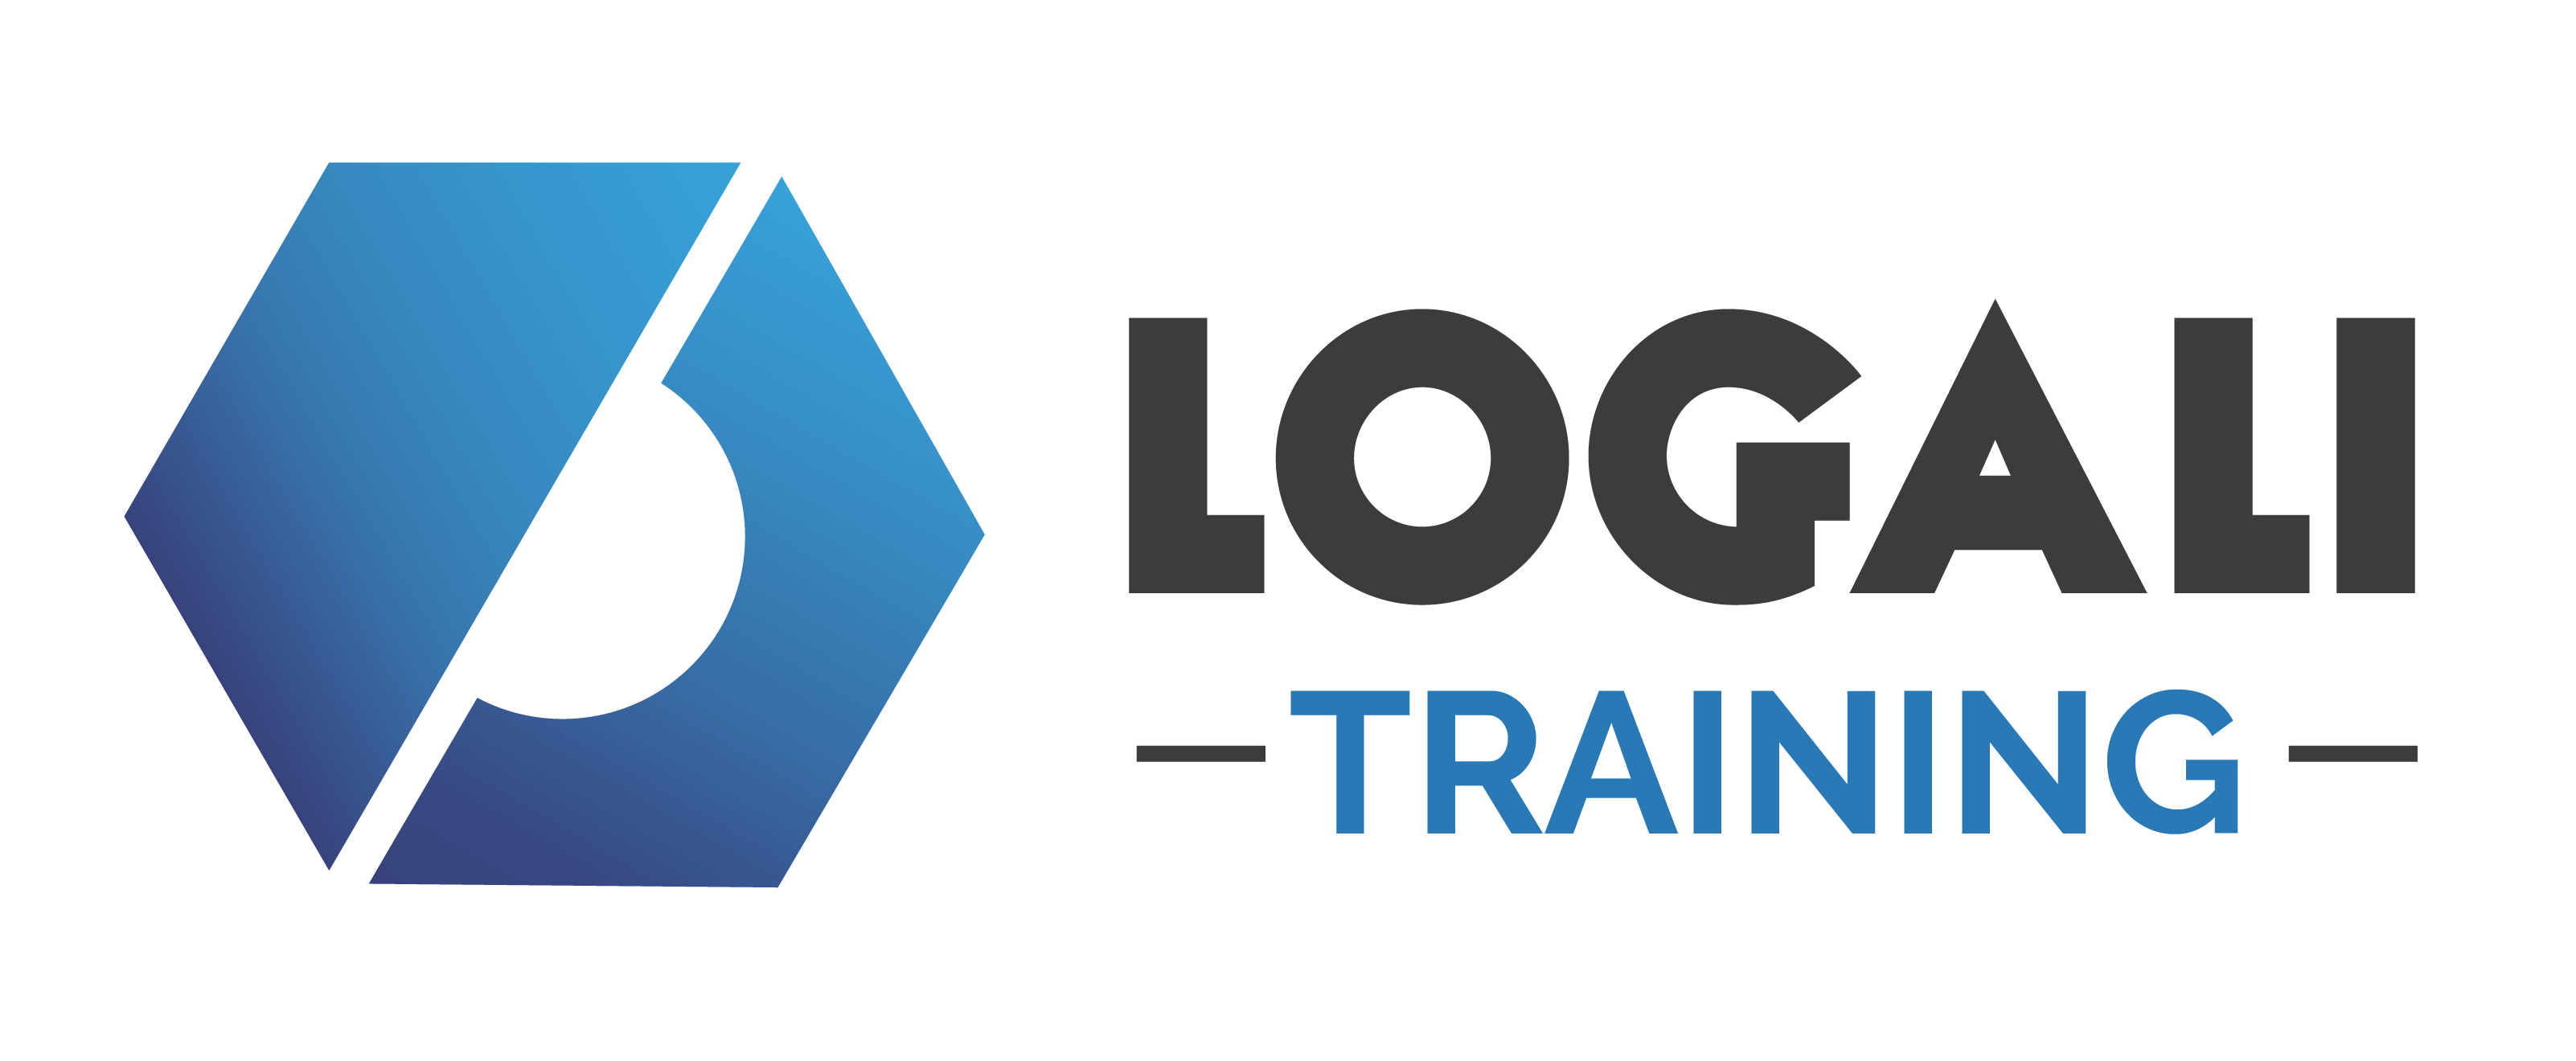 Logali Training